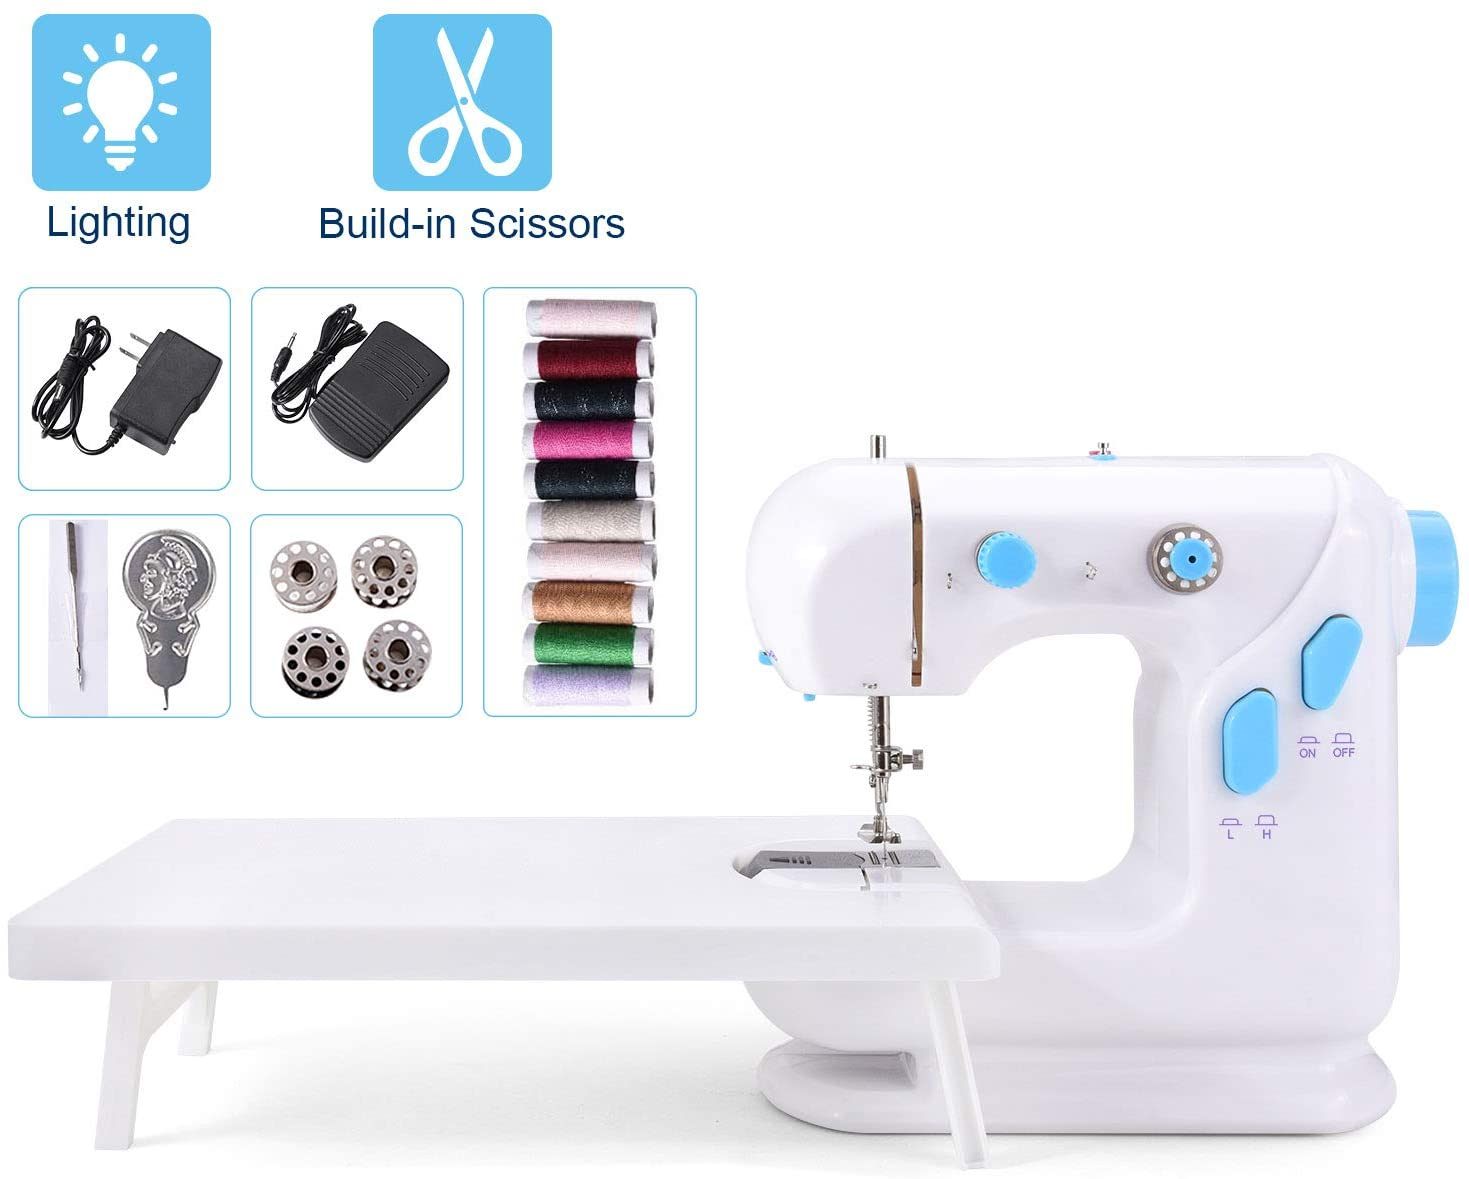 Suteck Mini Sewing Machine - Blue